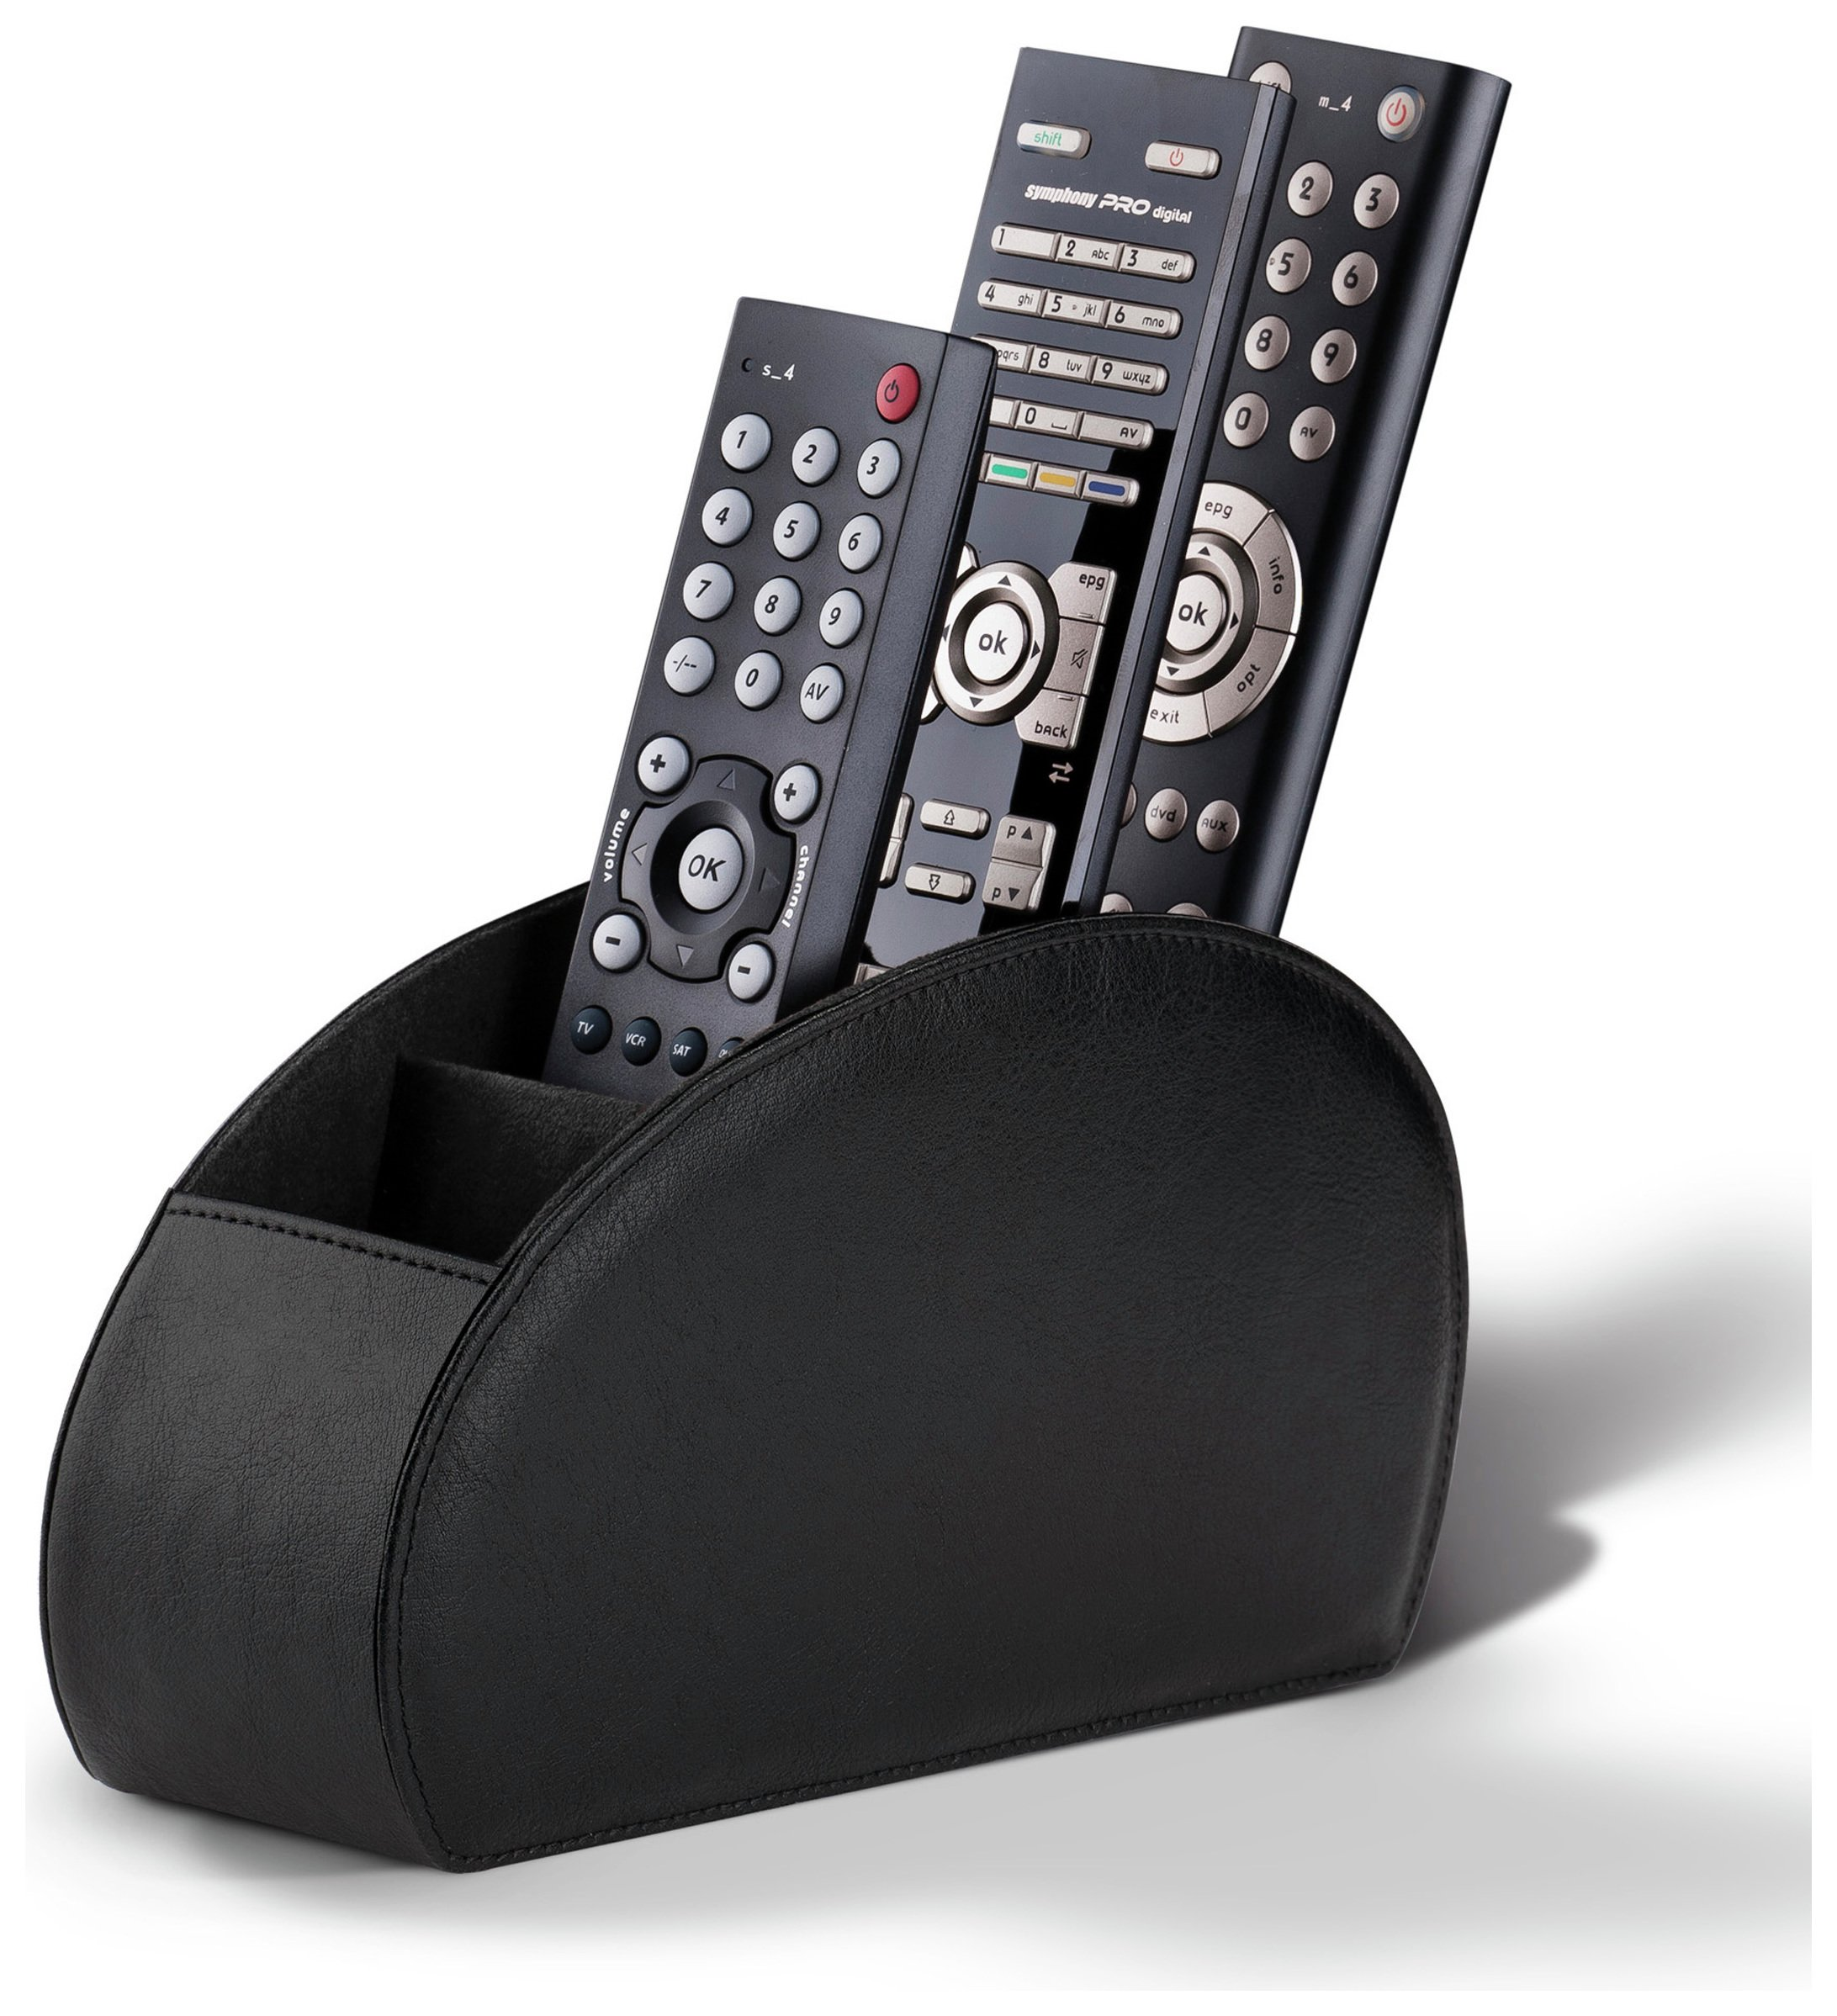 Image of Connected Essentials Luxury Remote Holder - Black.